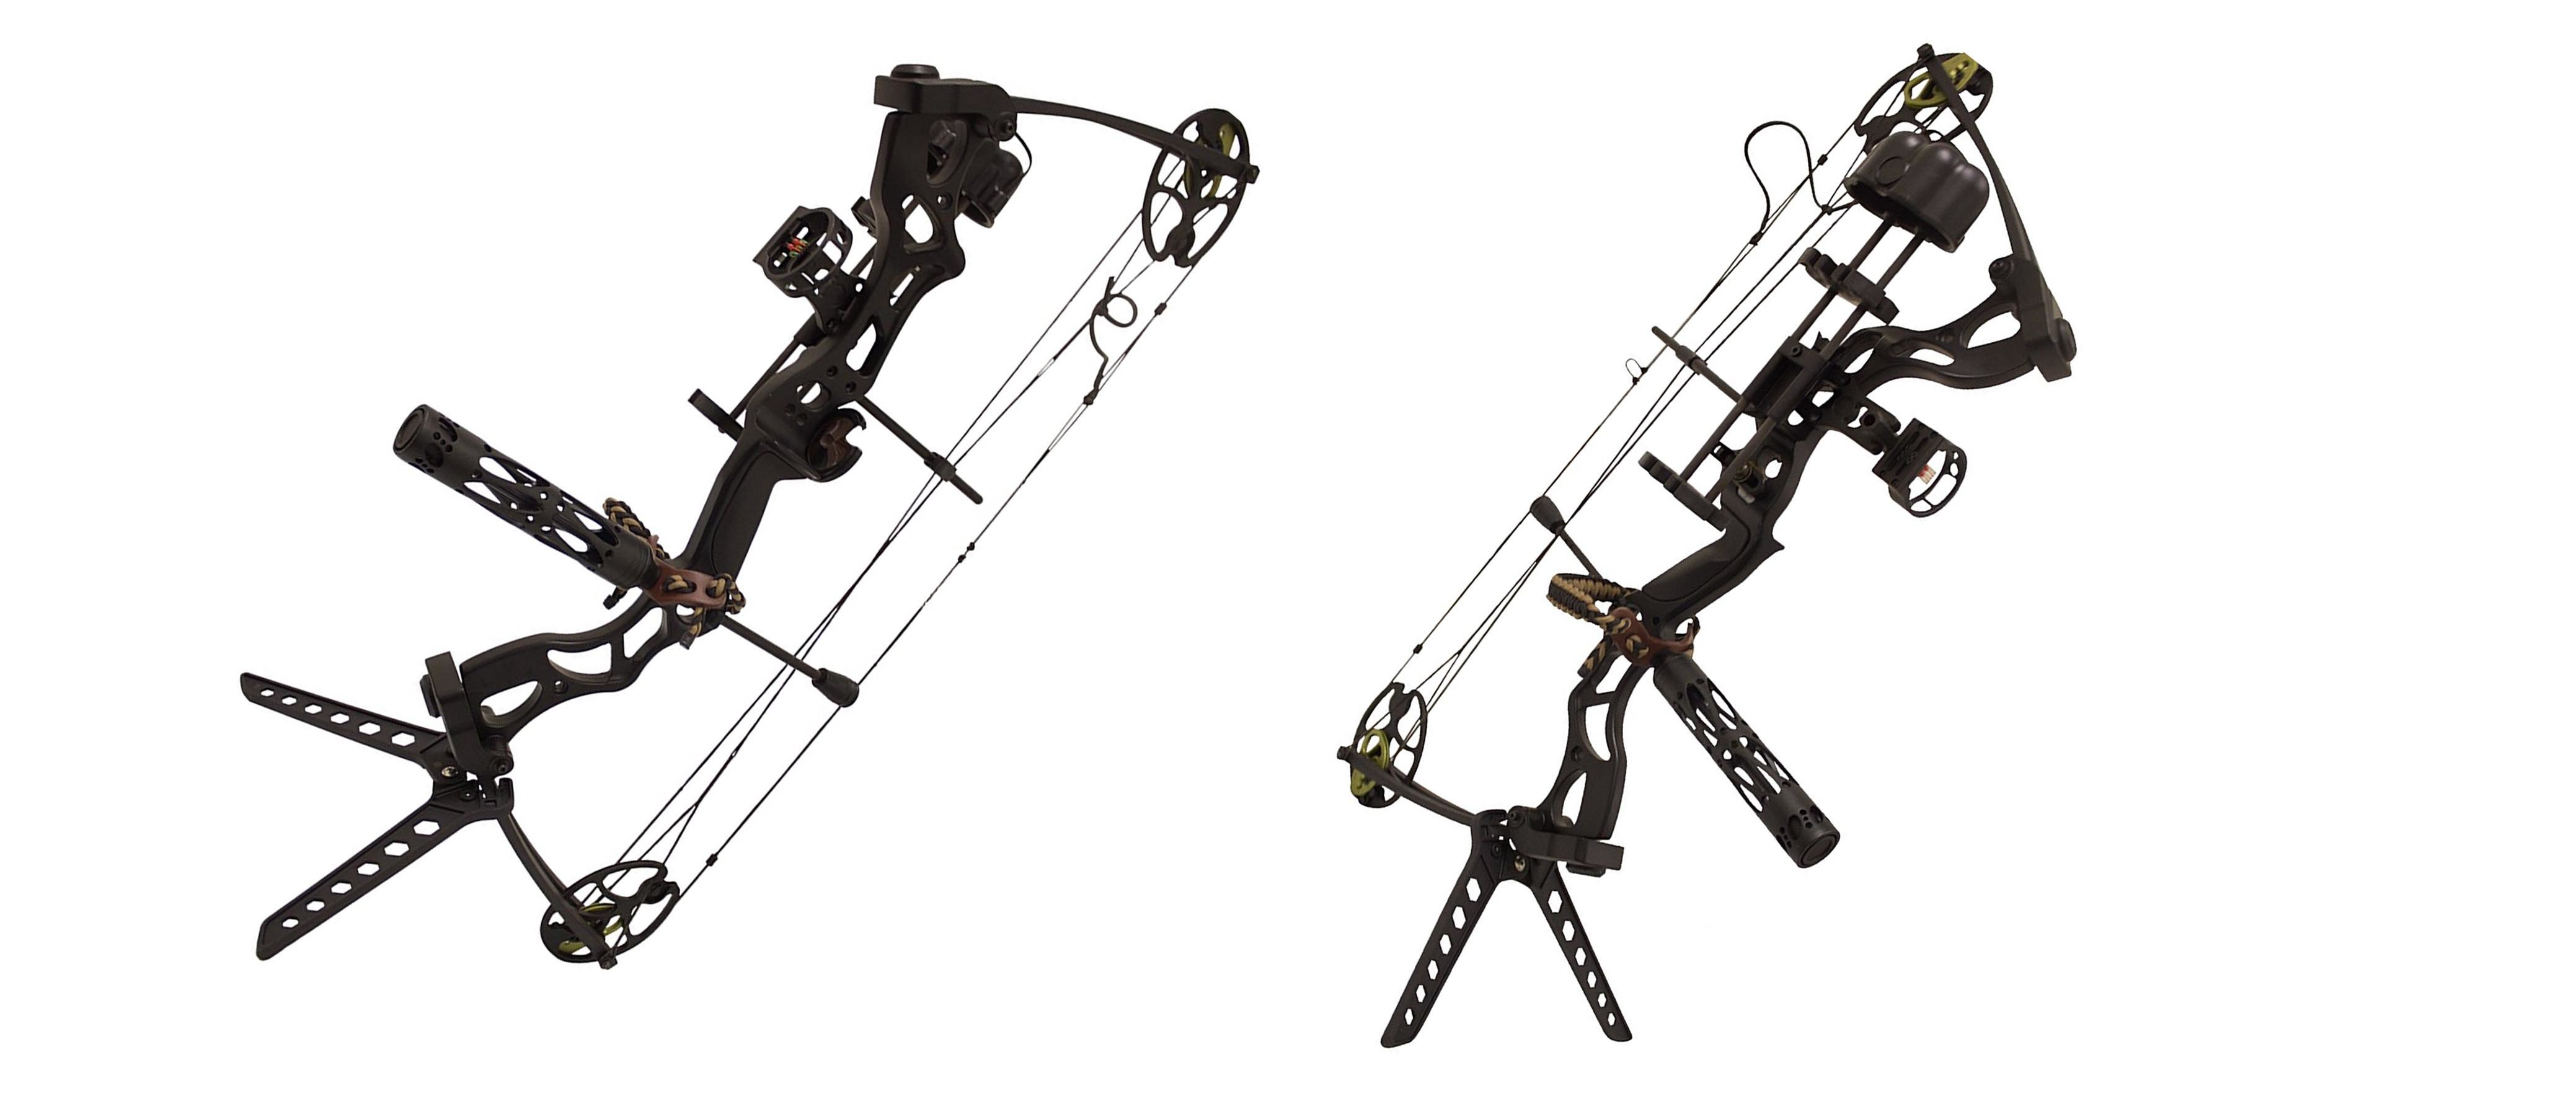 "SAS Rage 70 Lbs 30"" Compound Bow"